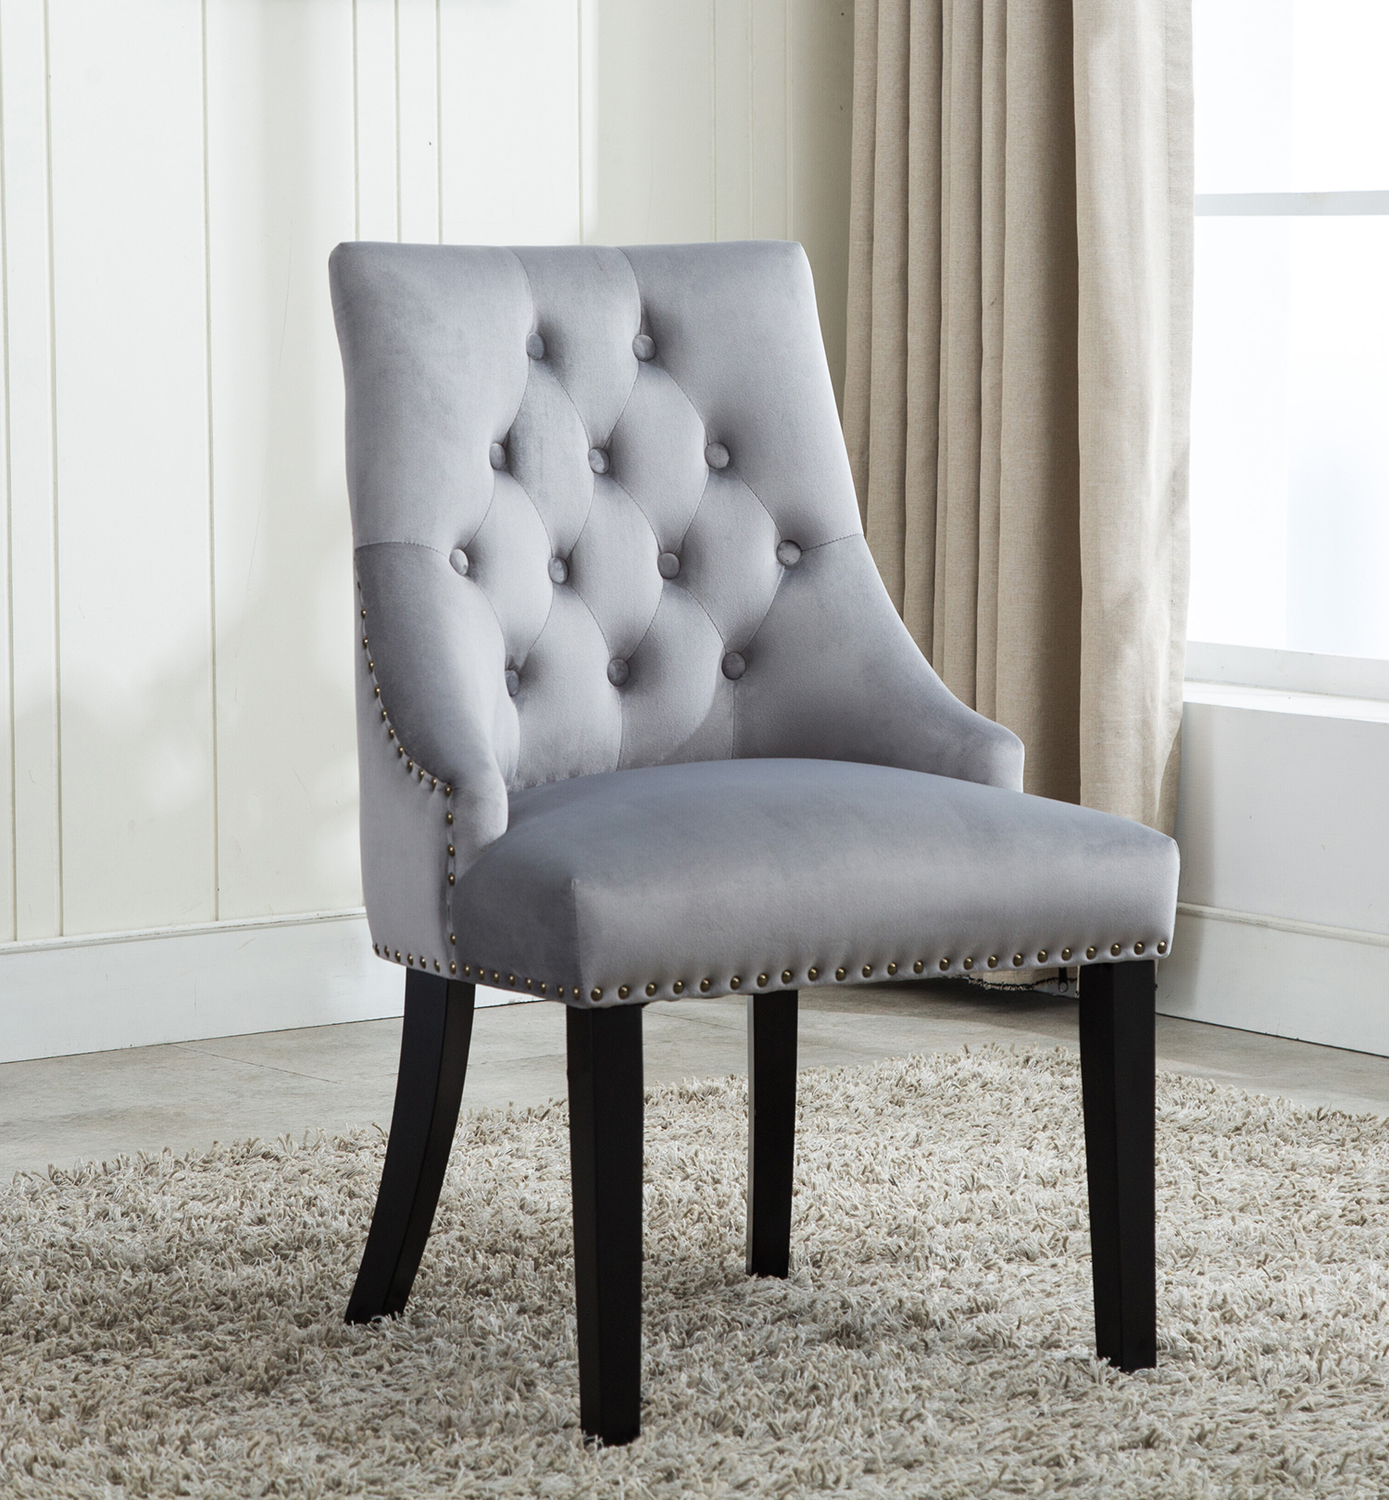 Victoria Tufted Velvet Fabric Studded Accent Dining Chair